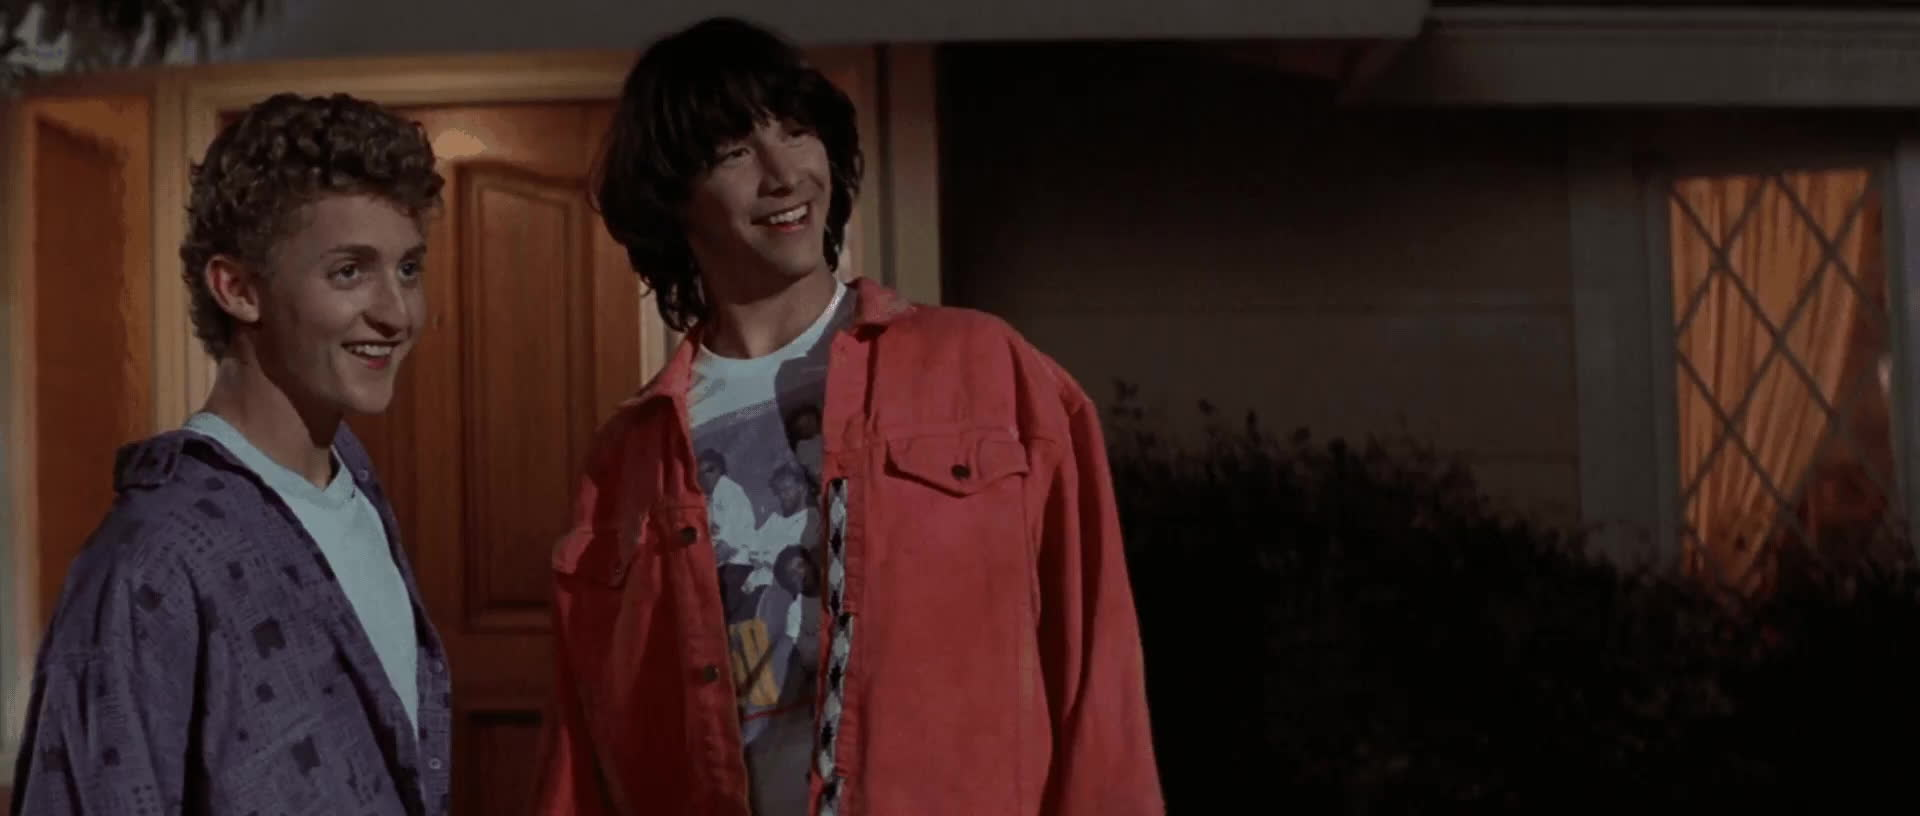 billandtedsexcellentadventure, keanu reeves, keanureeves, nah, naw, no, no way, nope, noway, NO WAY! [Bill & Ted's Excellent Adventure] Keanu Reeves GIFs